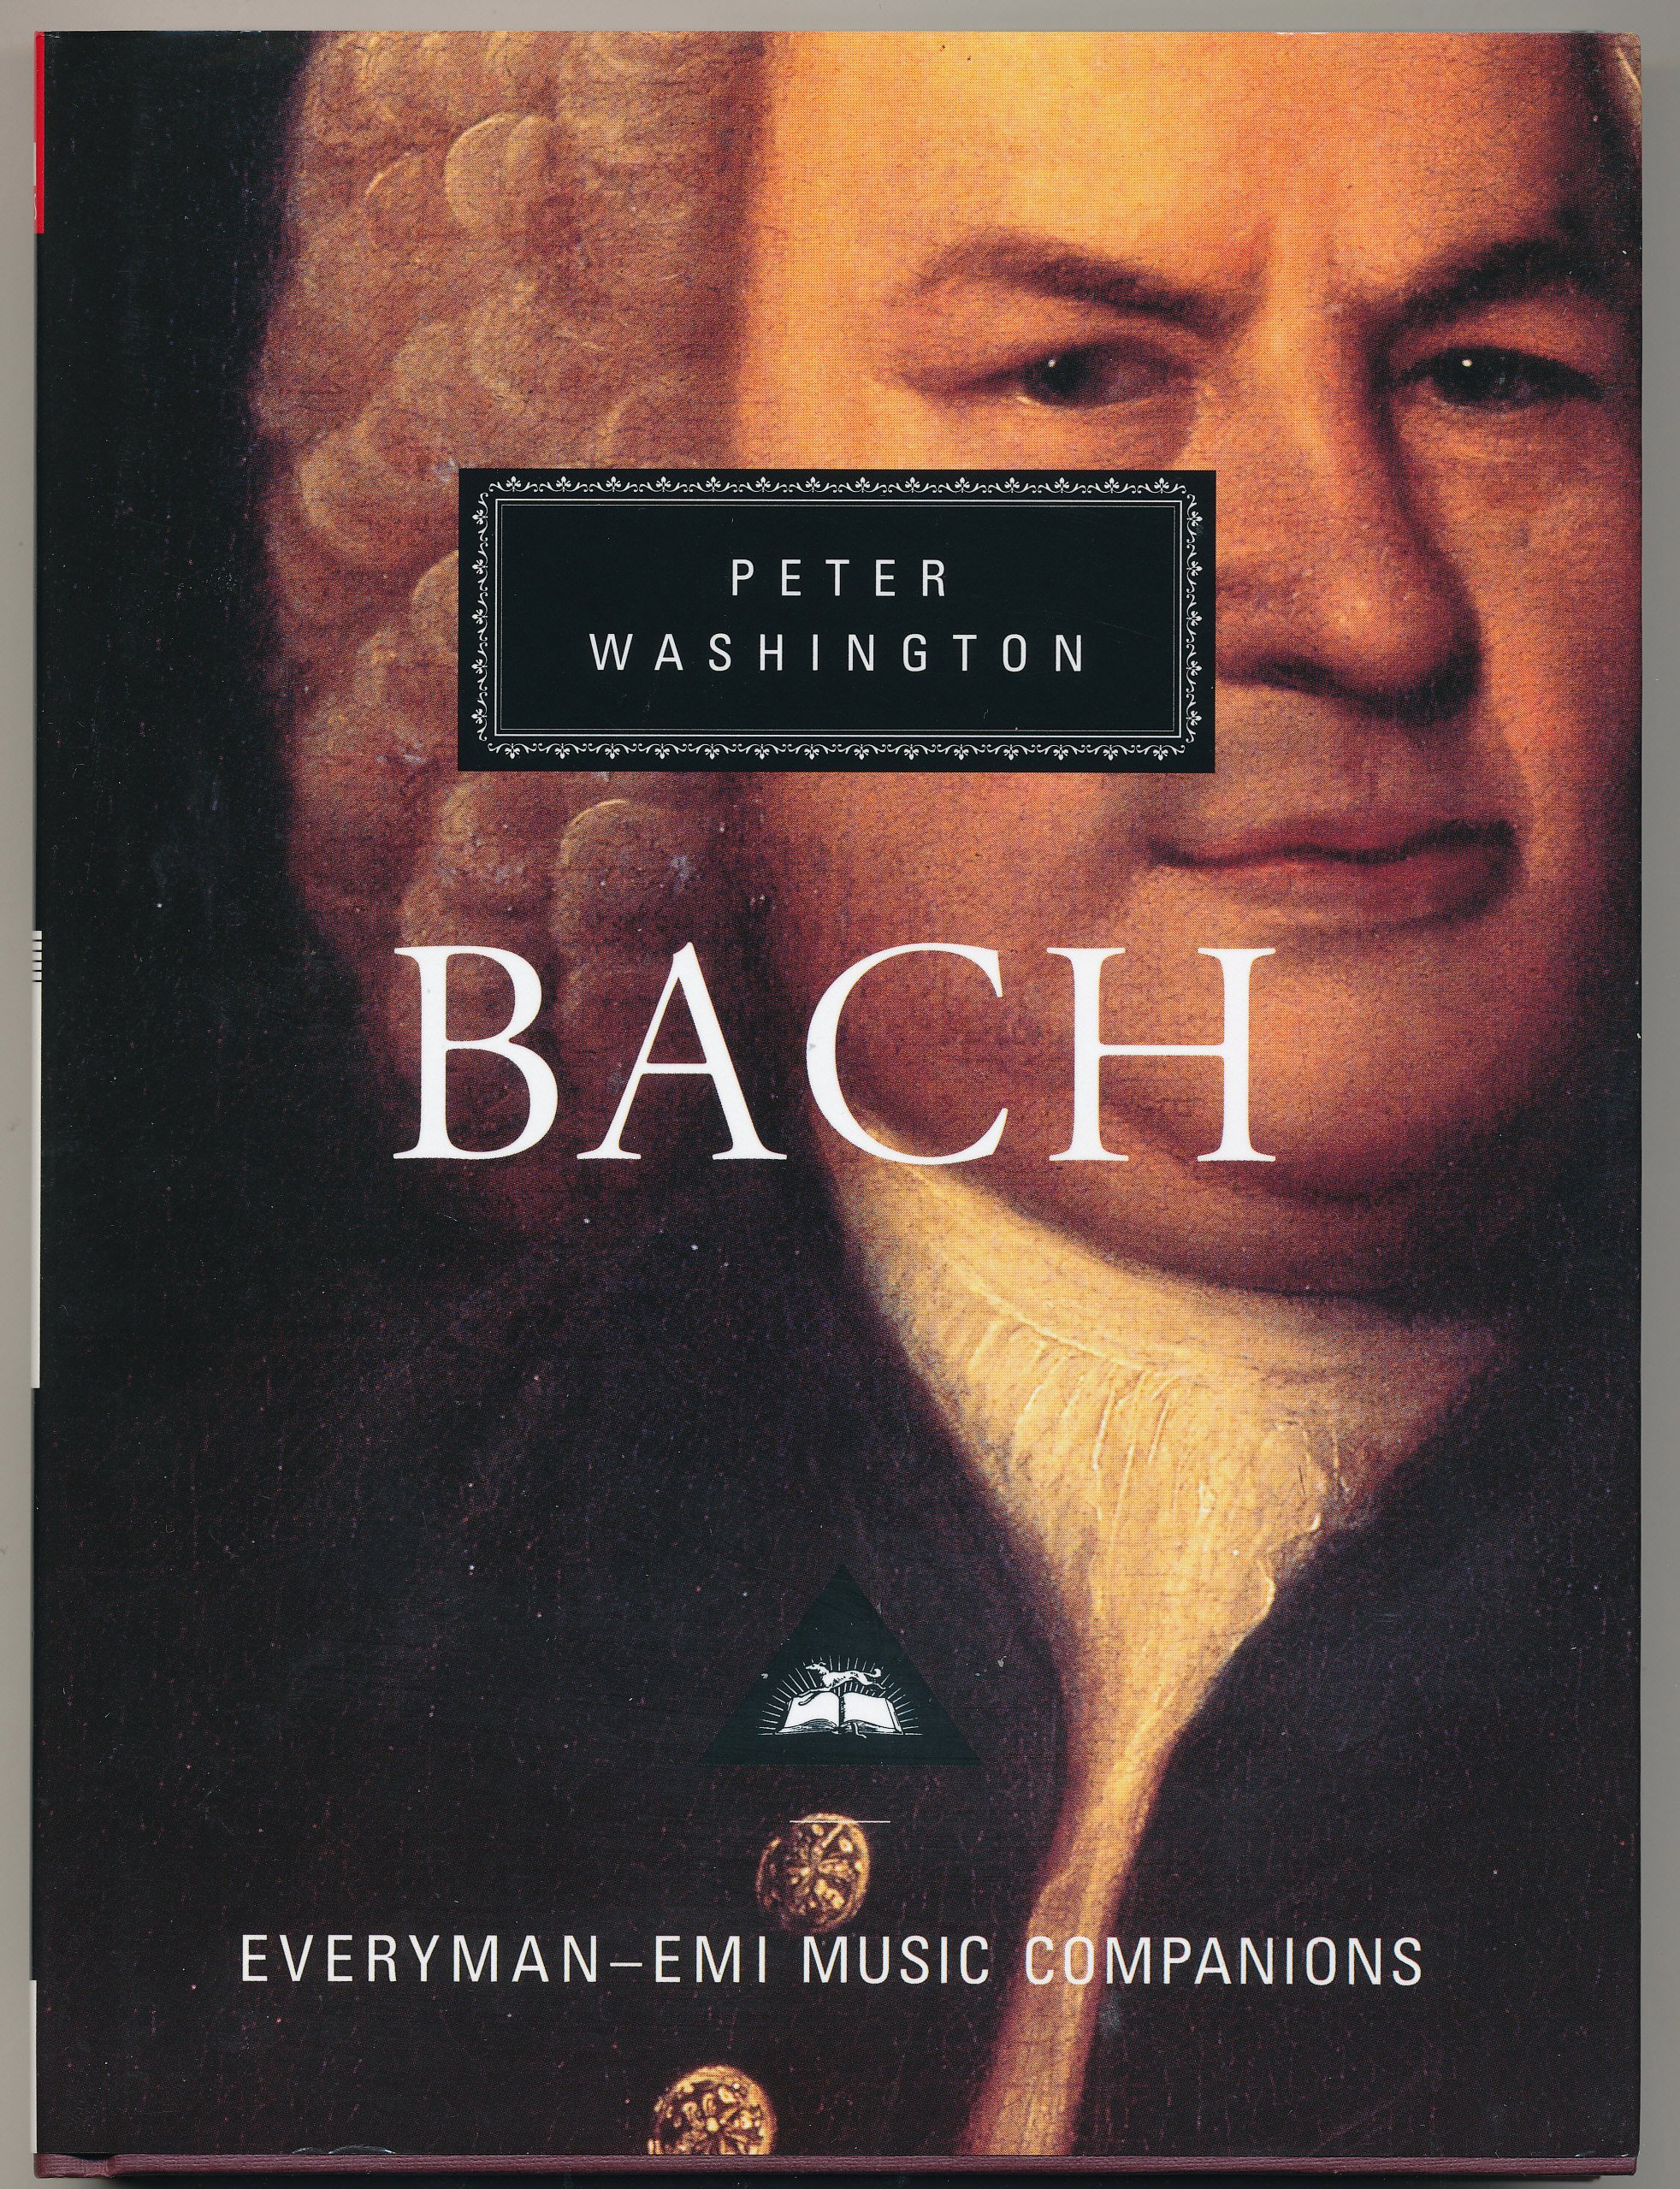 Bach (EMI Everyman Music Companion Guides)